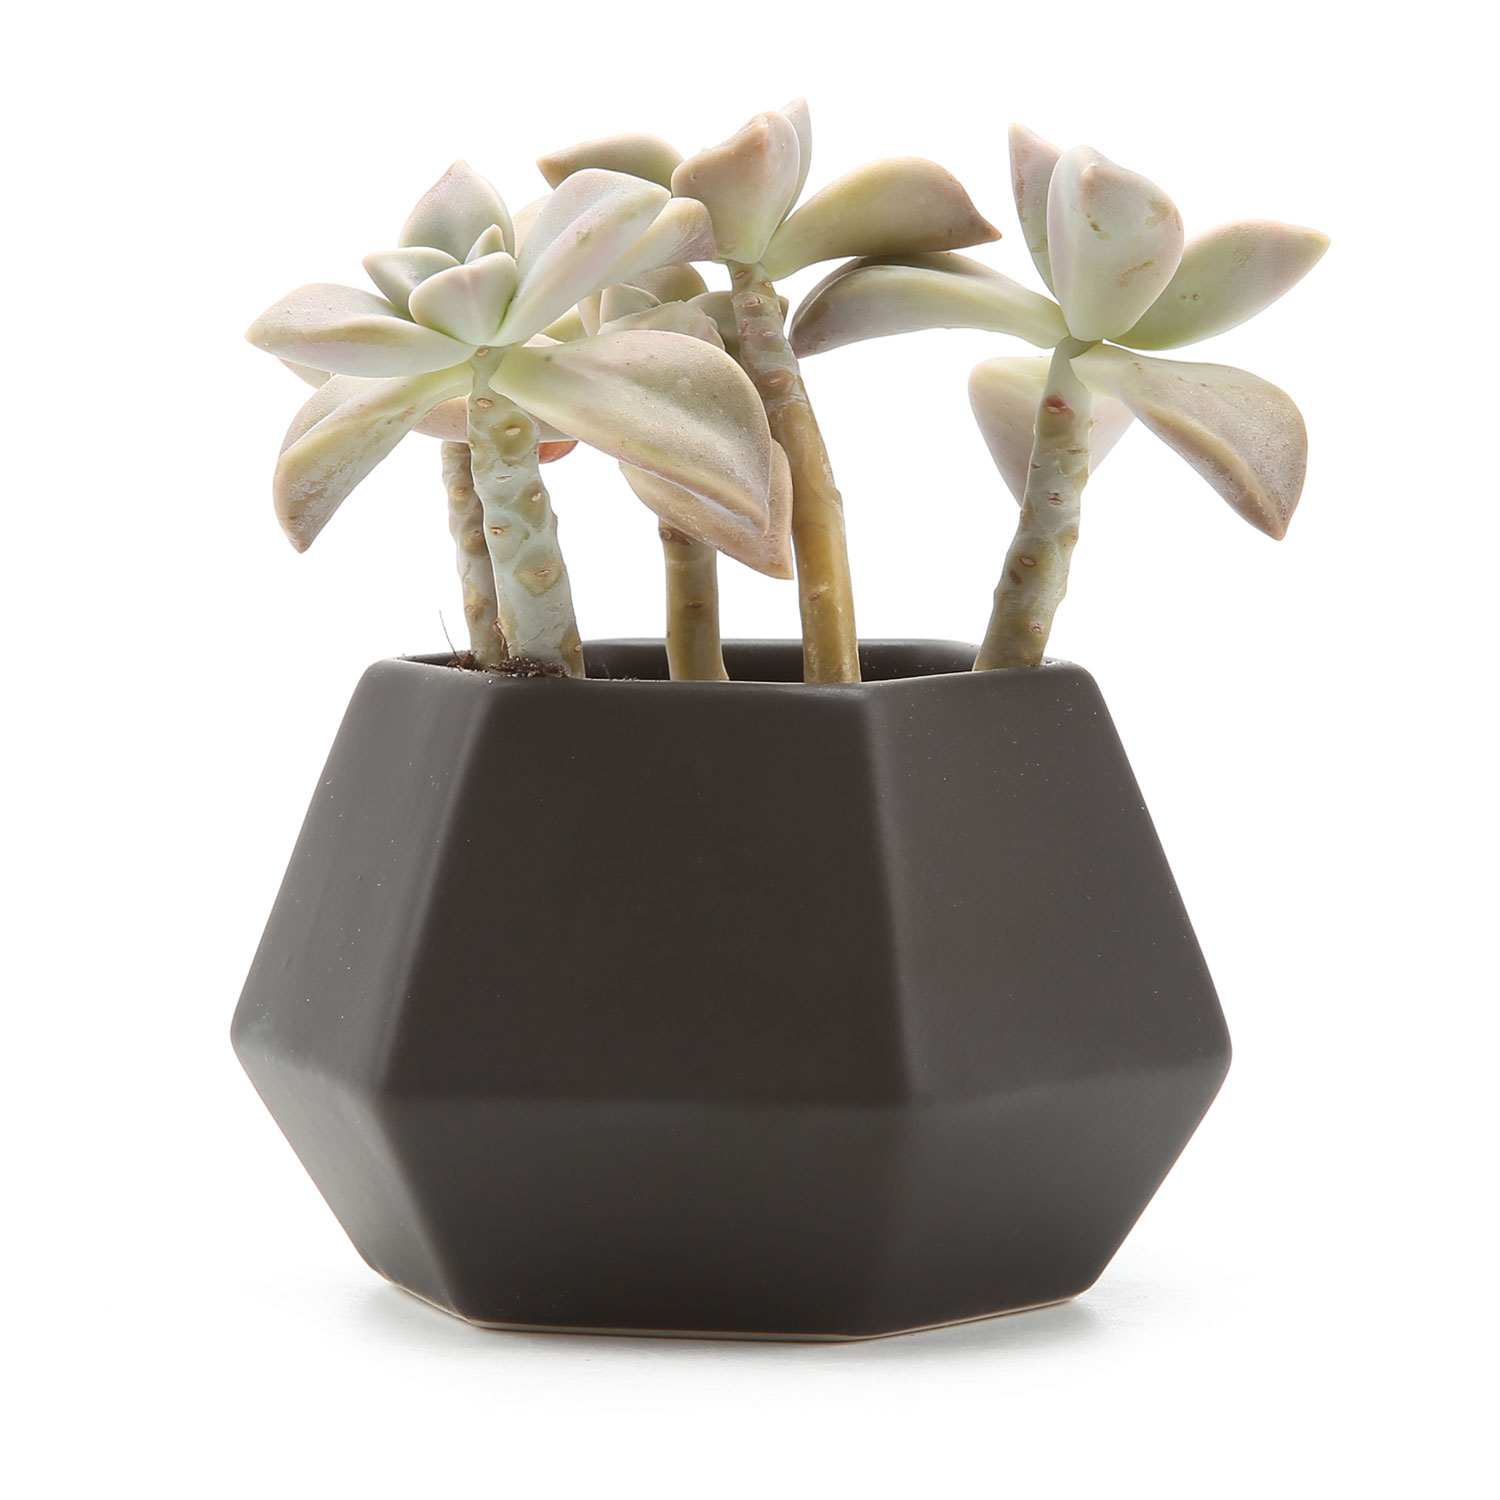 Cactus Planting Pots Us 7 47 49 Off T4u Ceramic Hexagonal Pattern Semi Luster Surface Succulent Plant Pot Cactus Plant Pot Flower Pot Container Planter Matte Black In